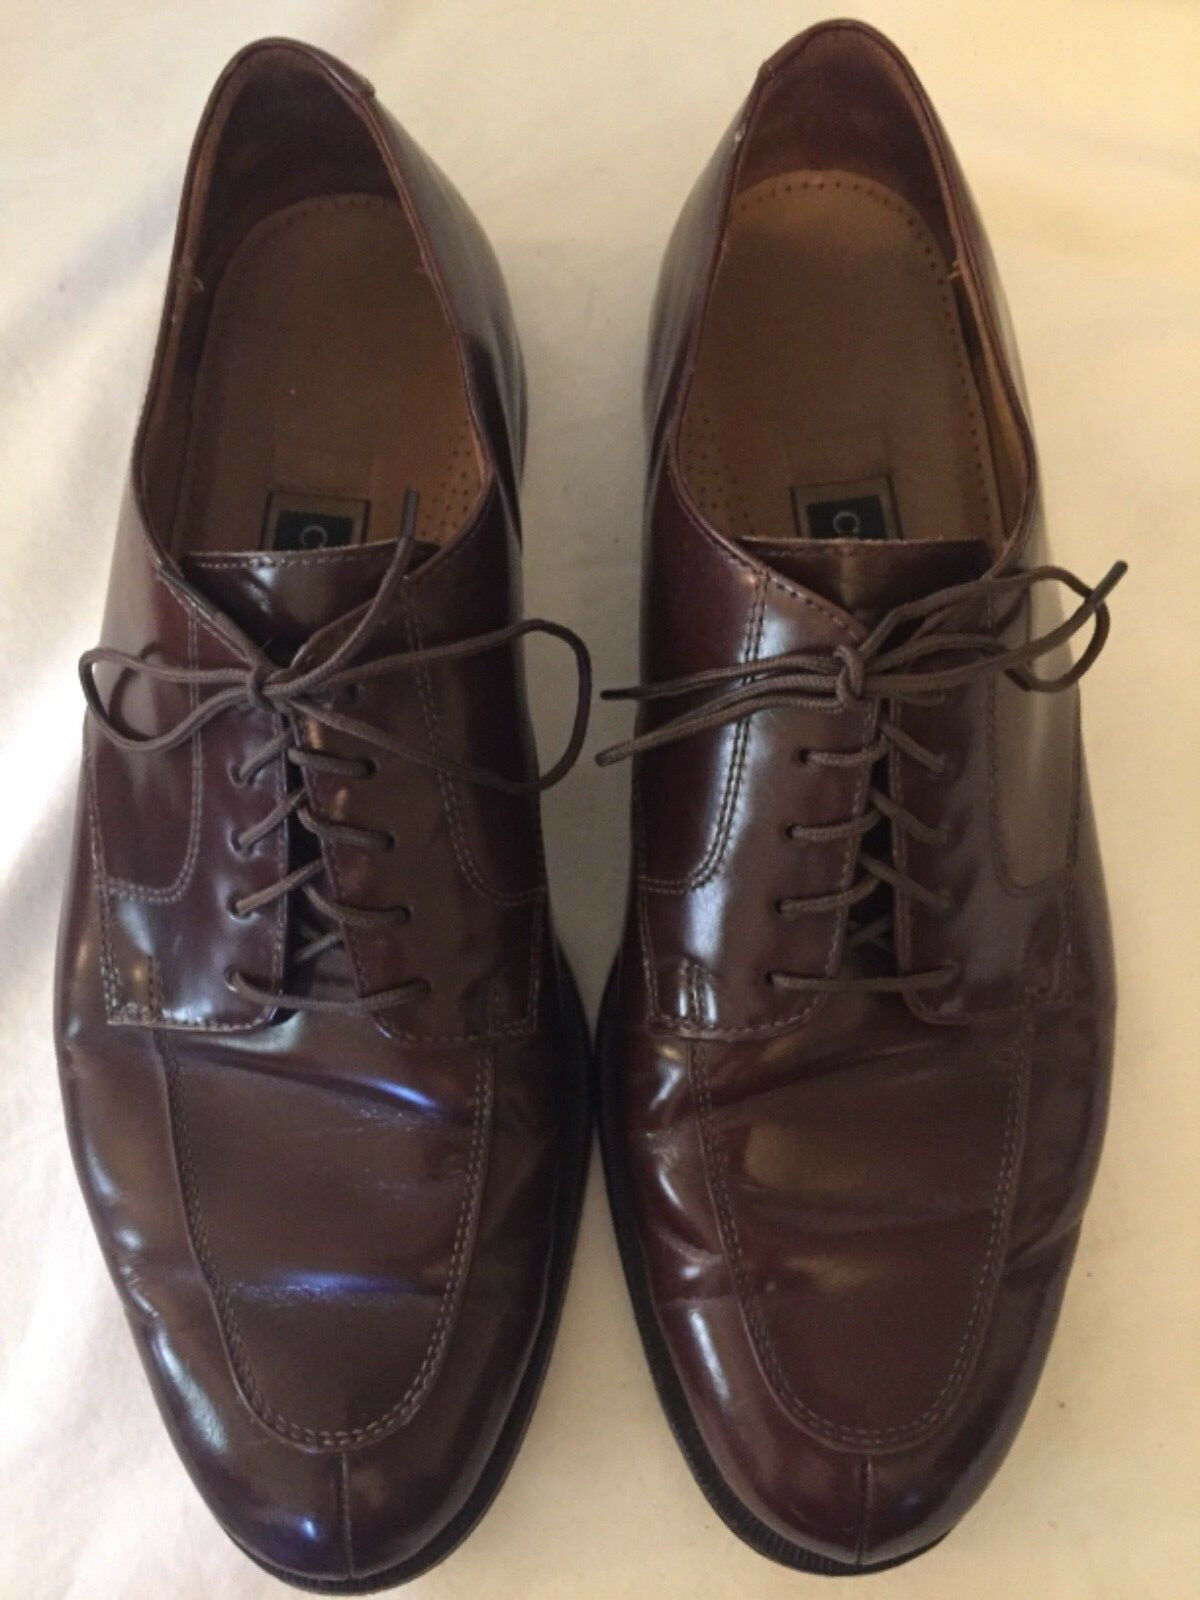 COLE HAAN MENS SHOES BROWN SIZE 10.5